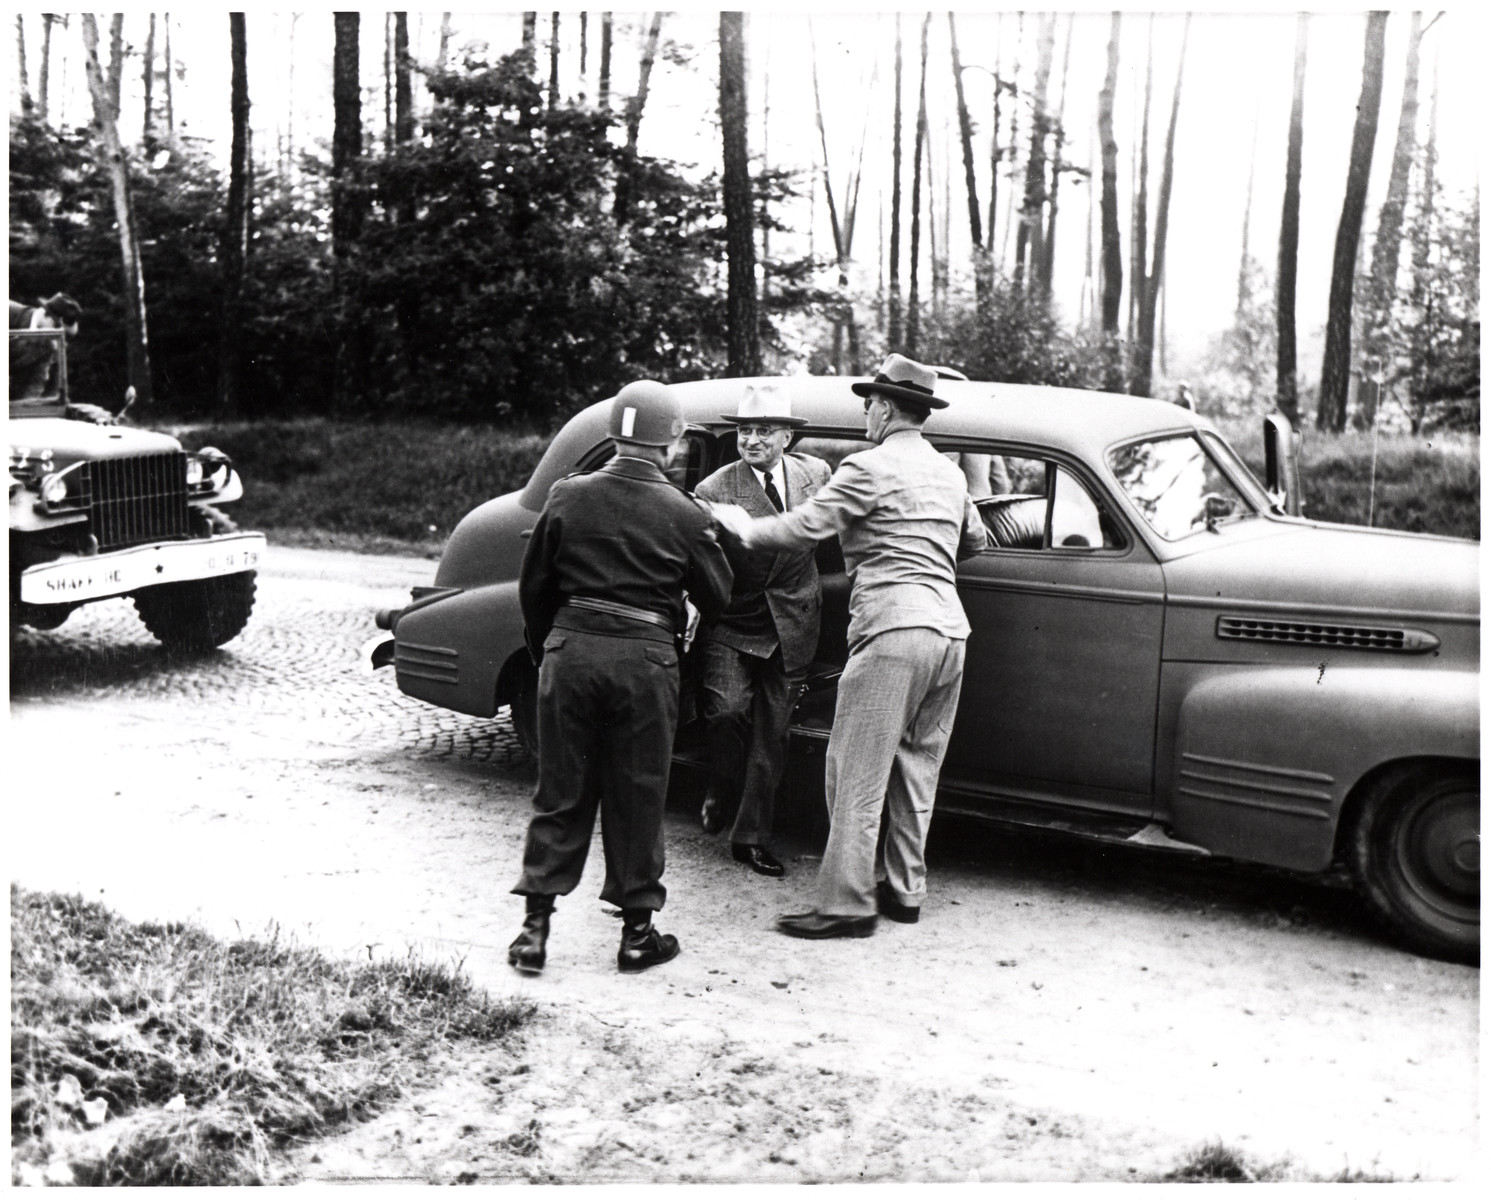 President Harry Trumman exits an automobile to meet with an army officer [perhaps during his visit to Germany to attend the Potsdam Conference].